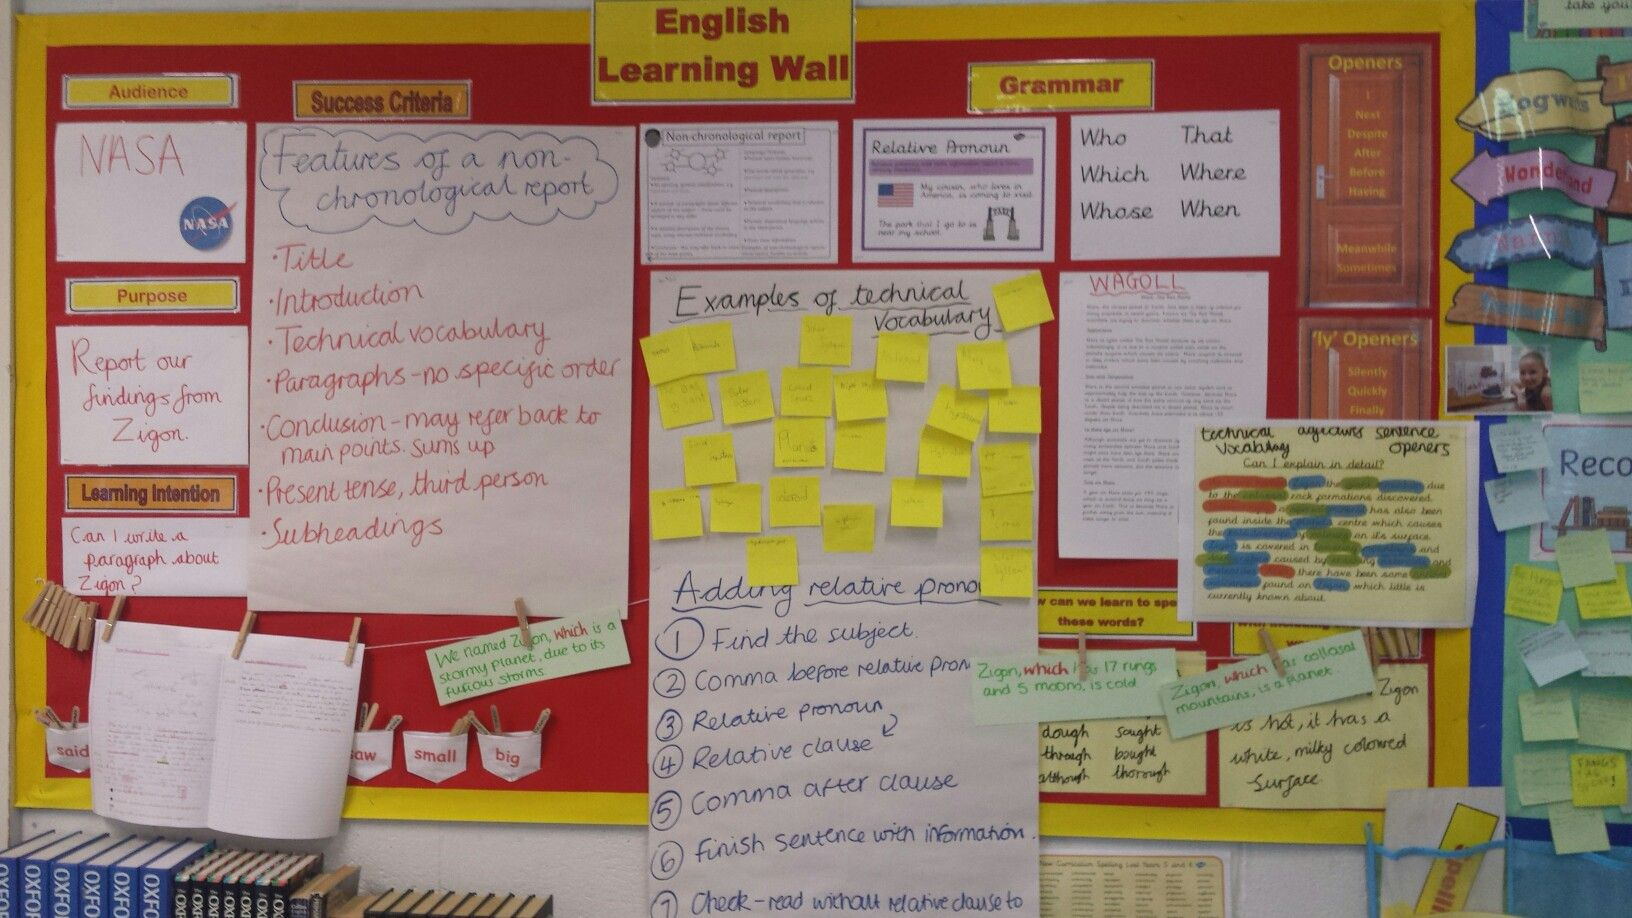 Uks2 English Learning Wall Non Chronological Reports